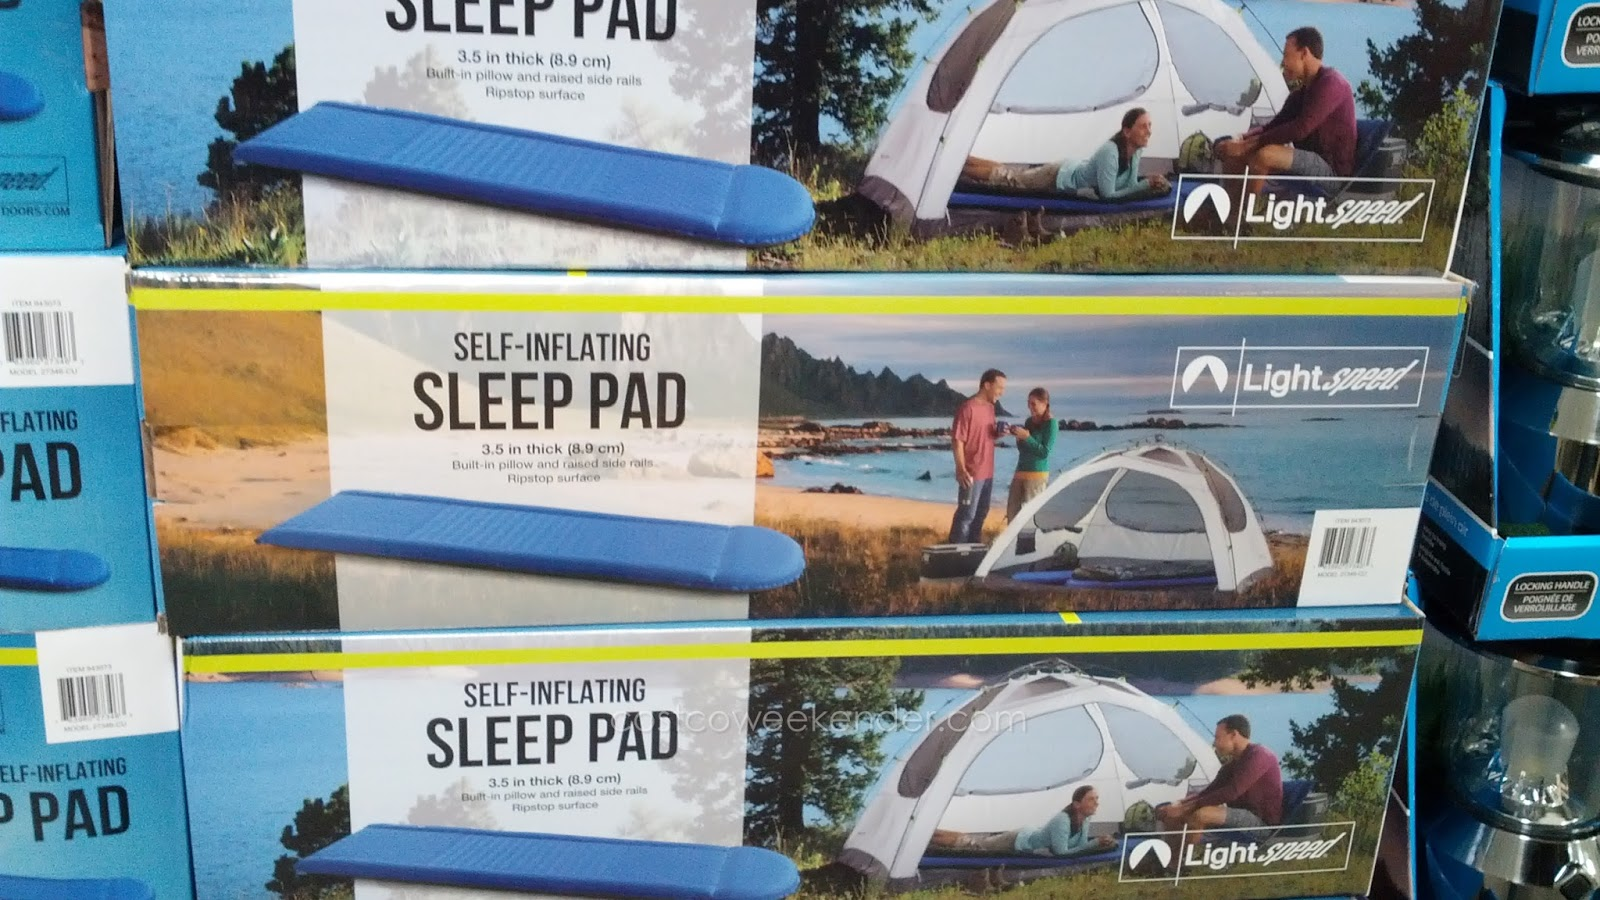 Camping bed costco - Sleep Well When Camping With The Lightspeed Outdoors Self Inflating Sleep Pad